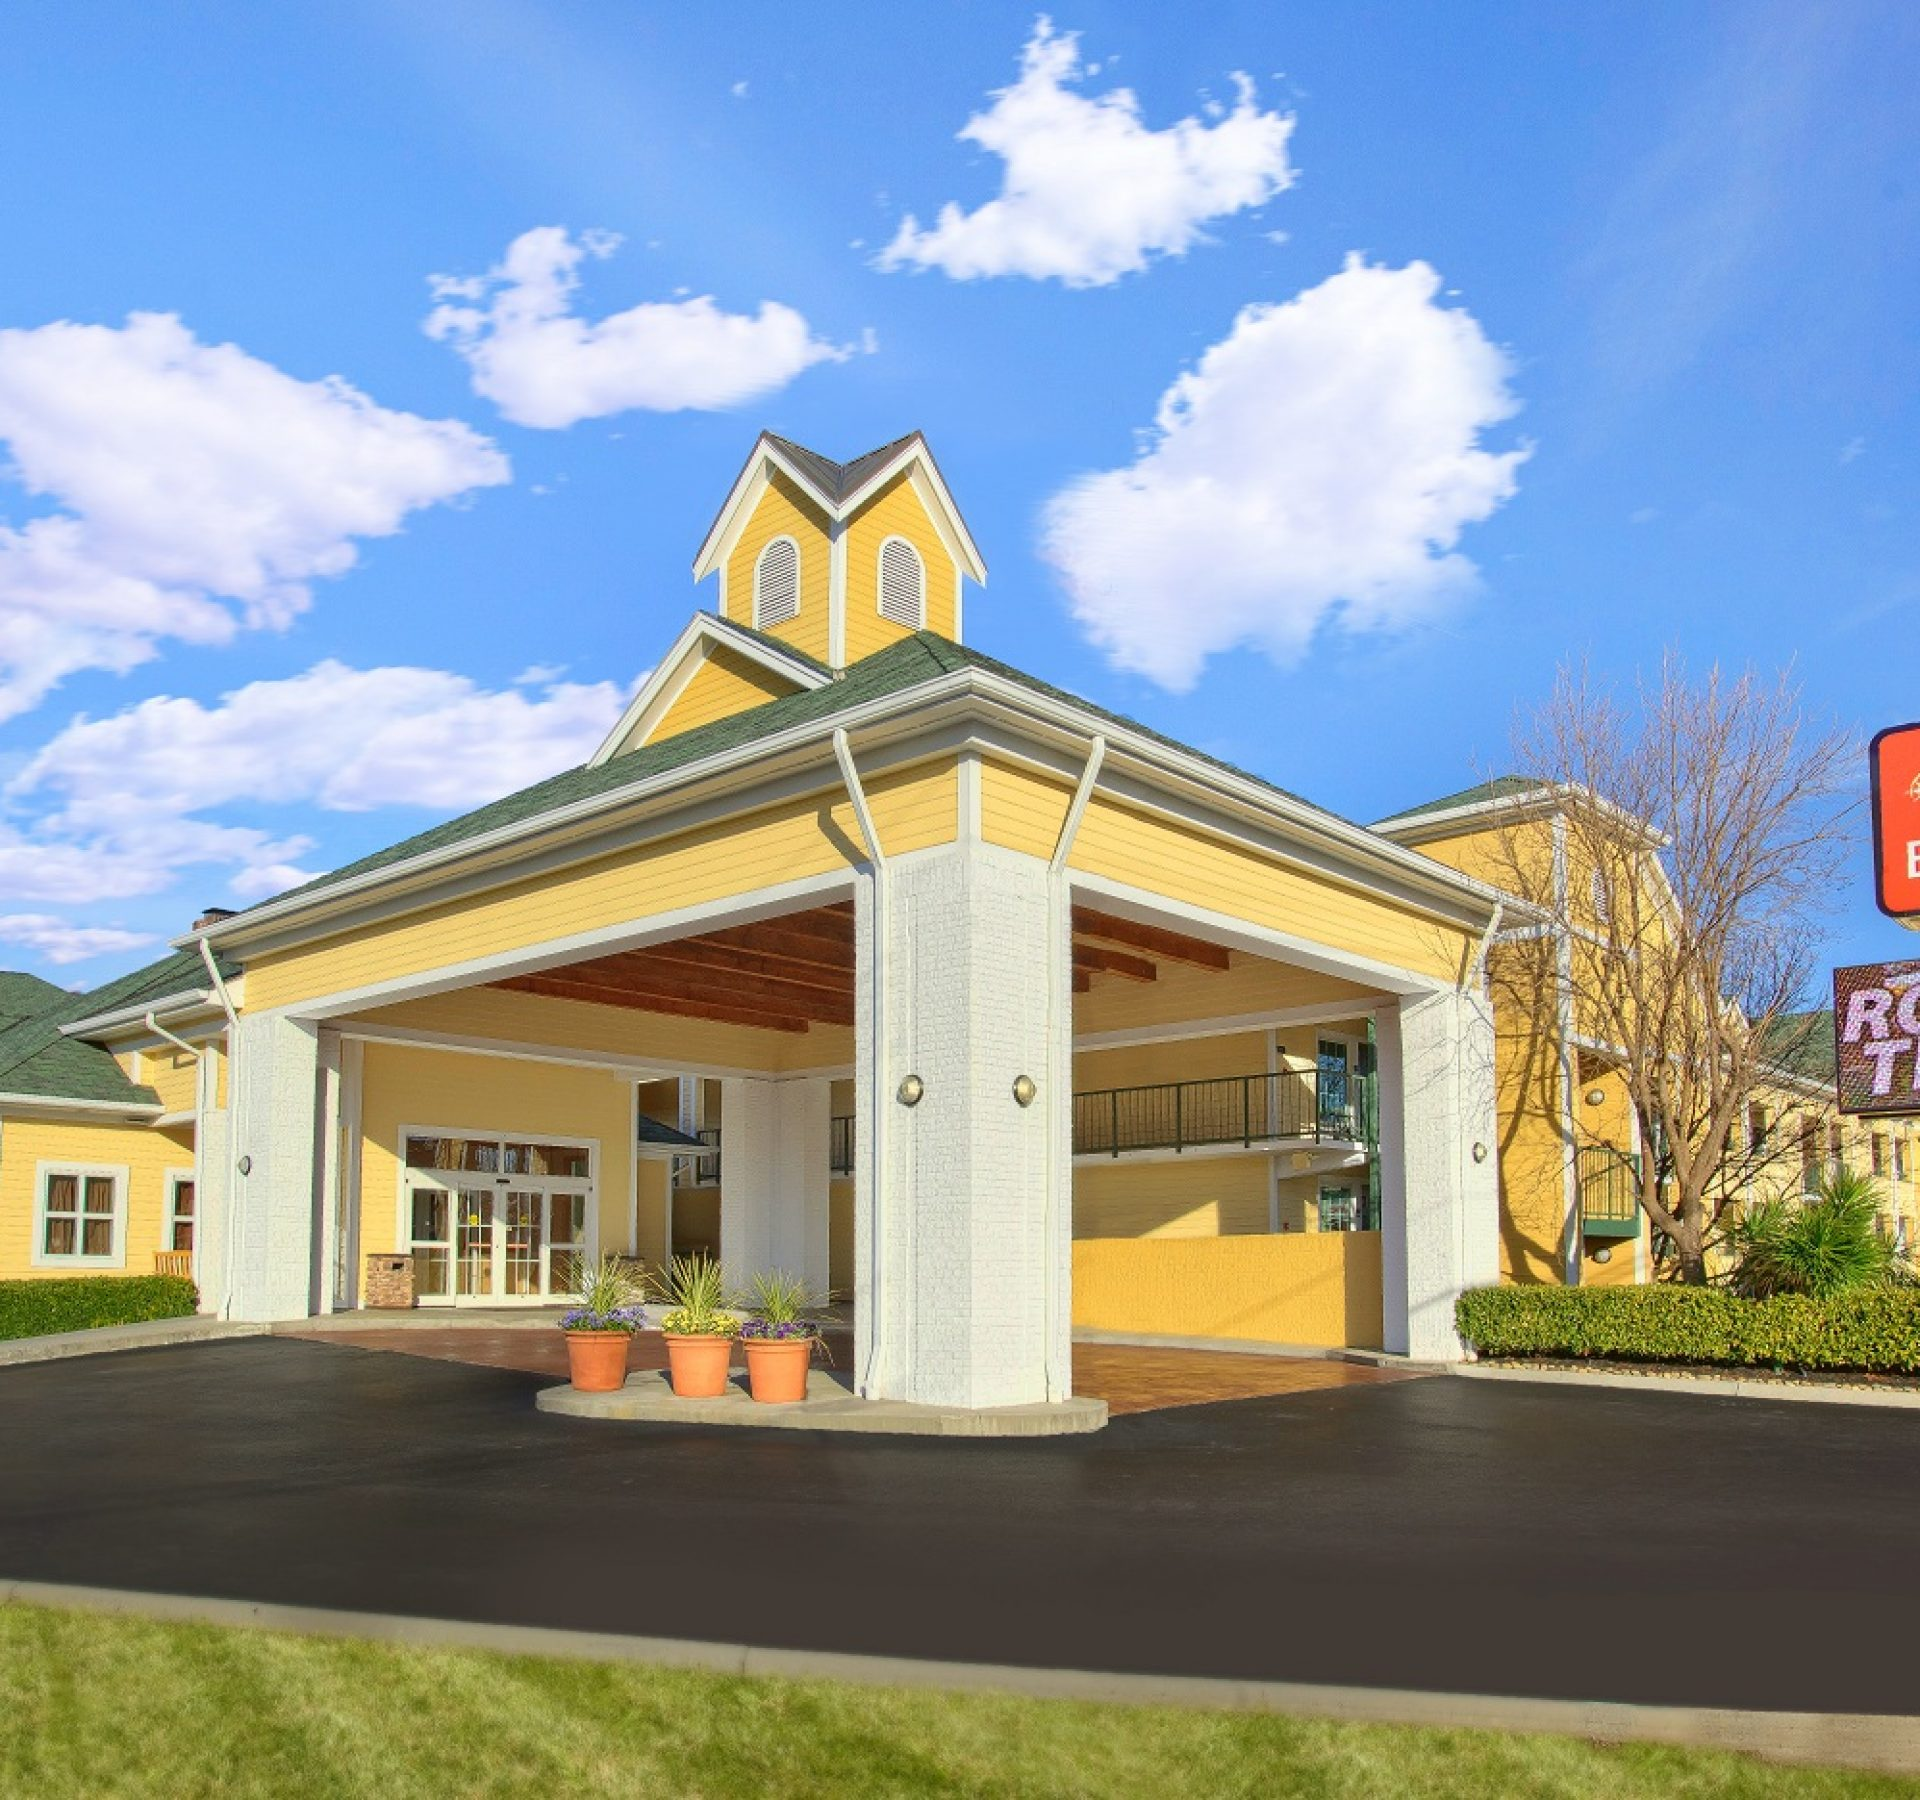 The Best Value Hotel in Pigeon Forge